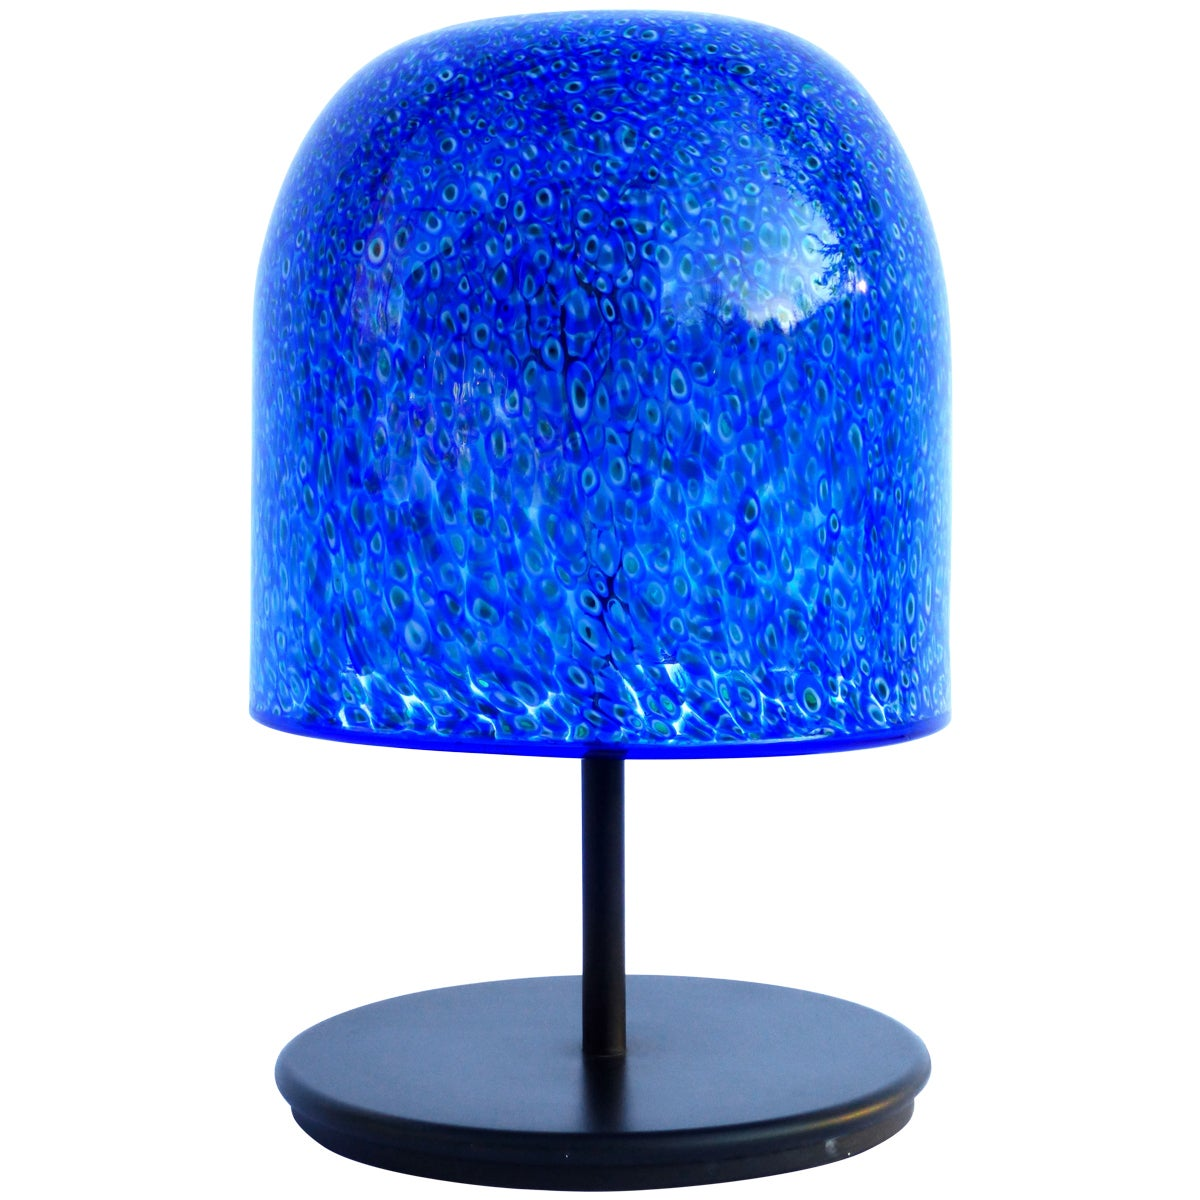 "Gae Aulenti, ""Glicine"" Table Lamp by Vistosi, Murano, Italy"